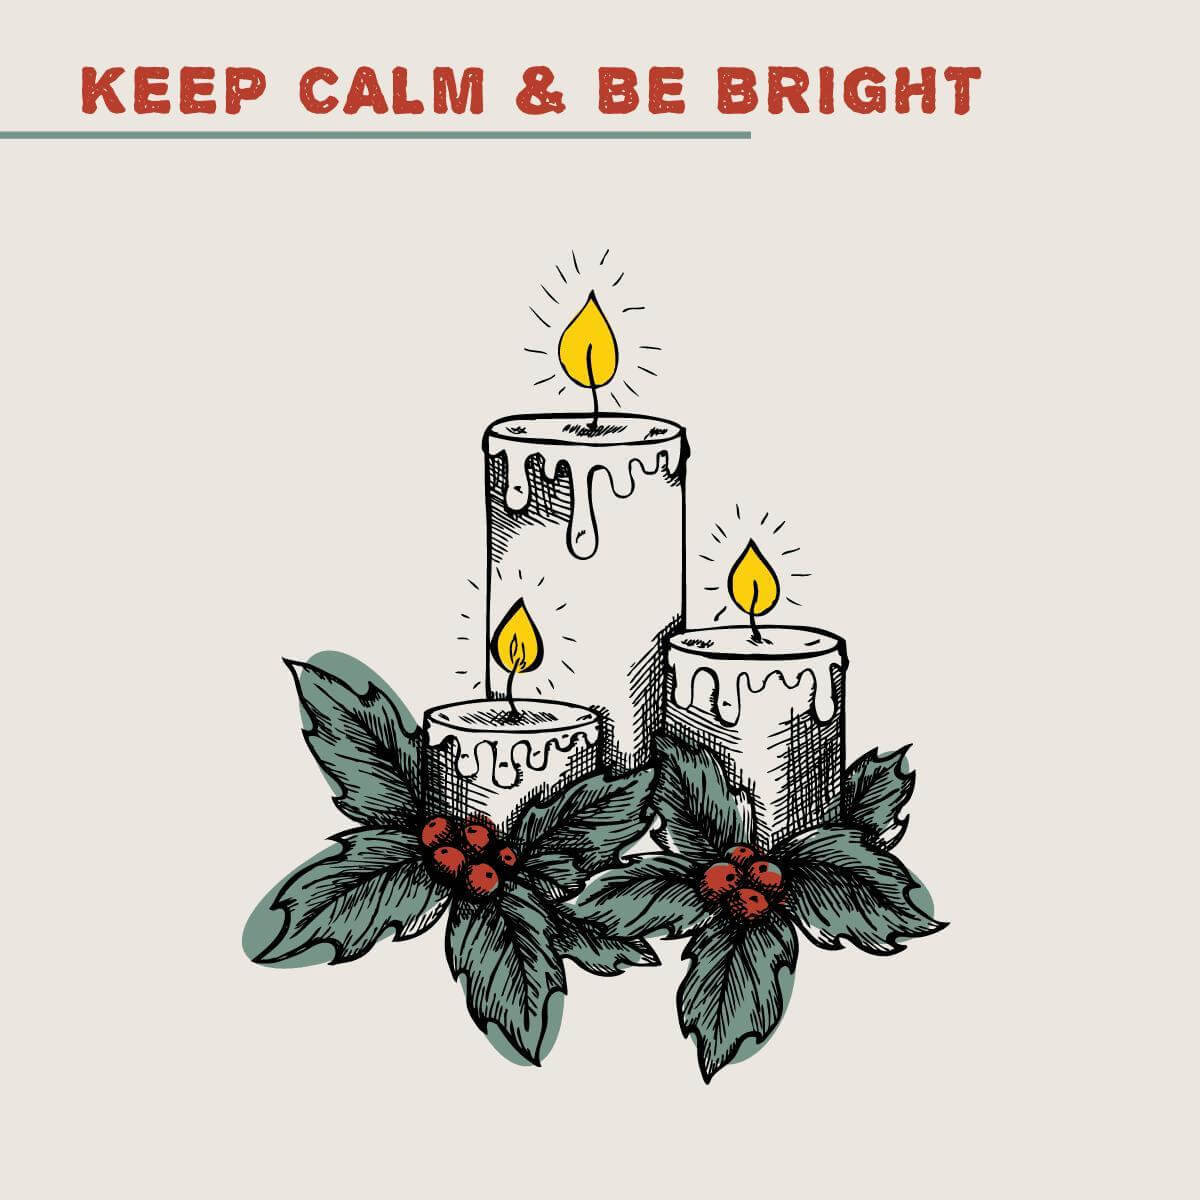 Keep calm and bright